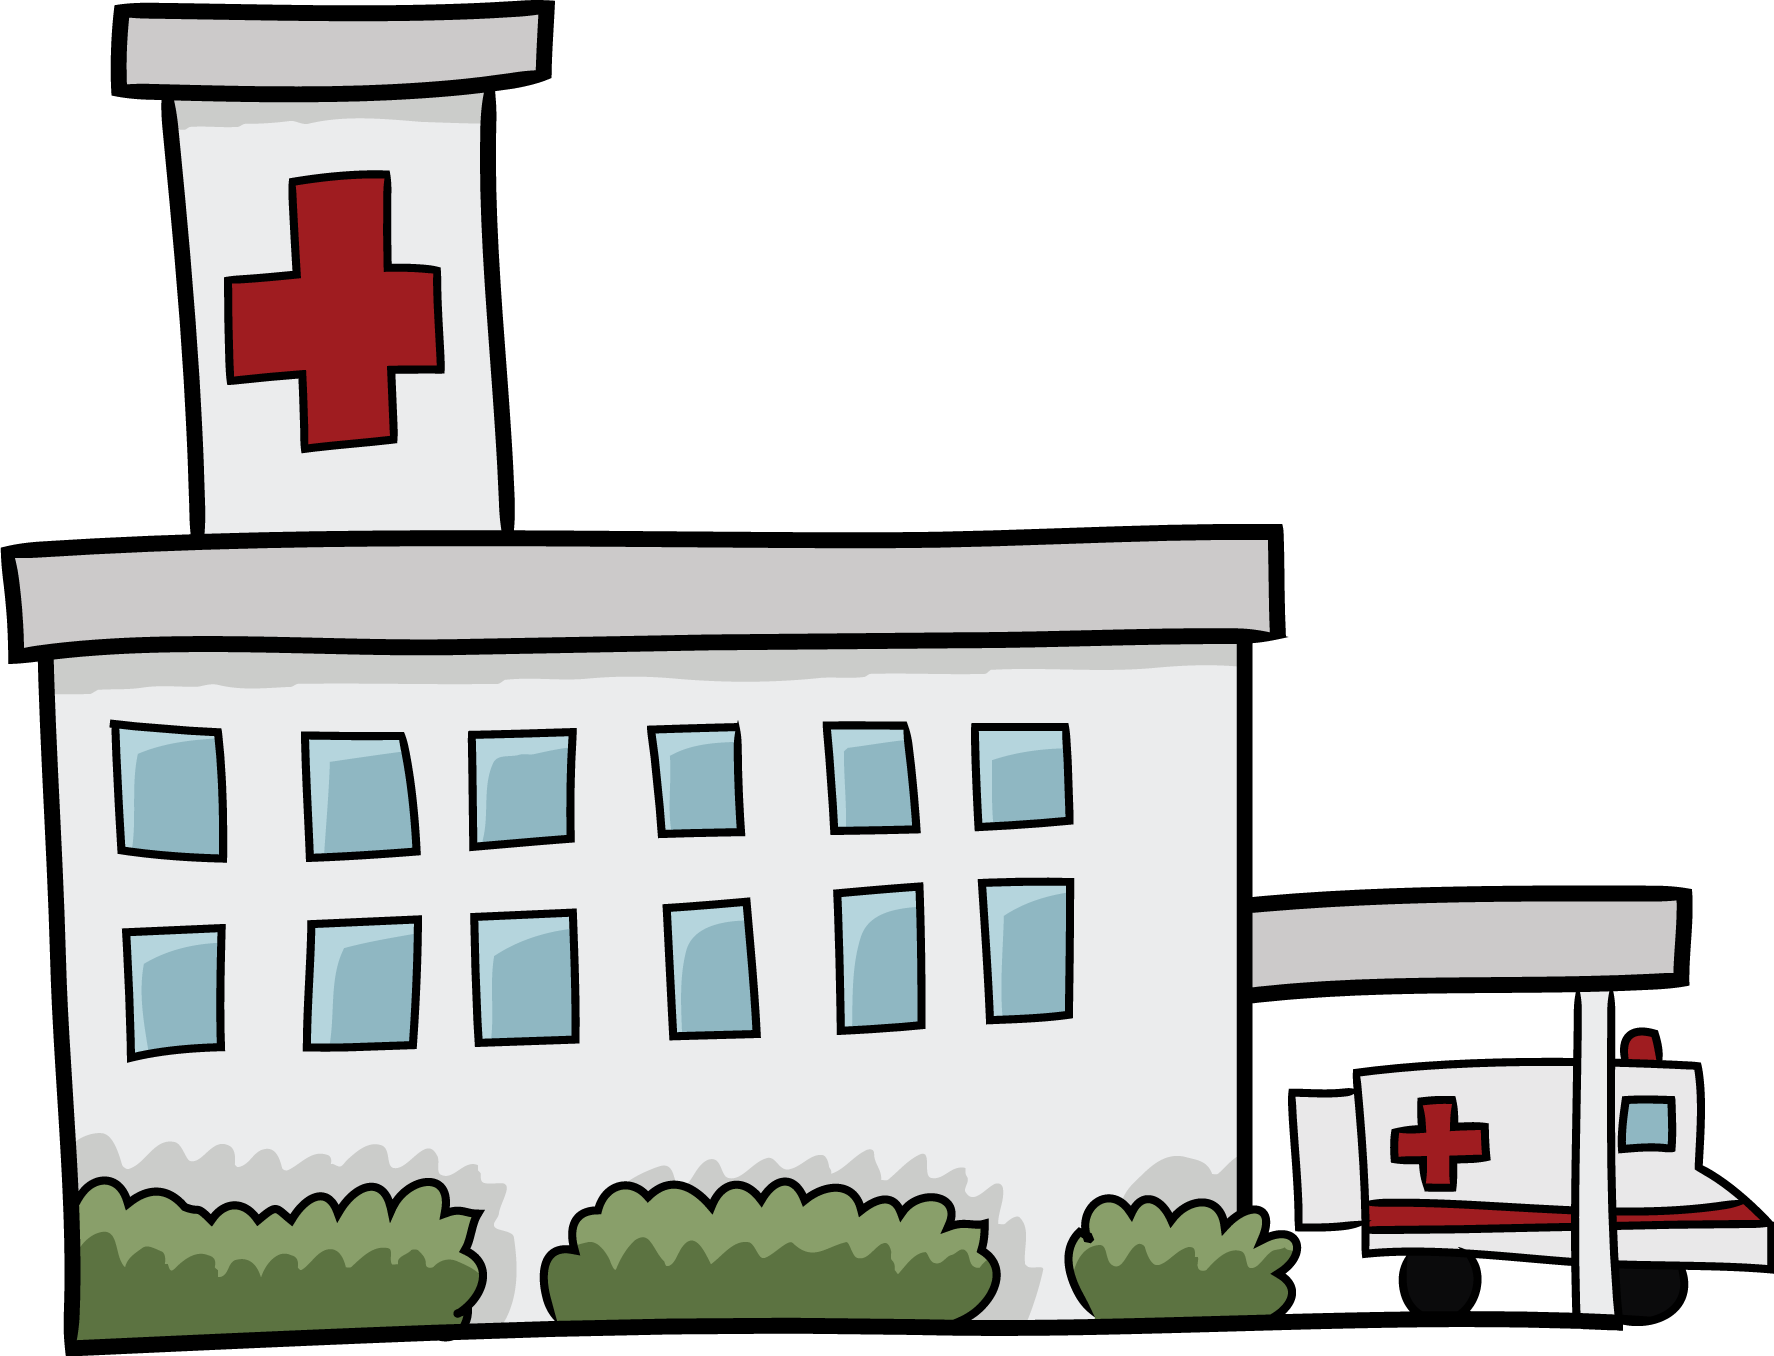 Community clipart cute. Hospital free